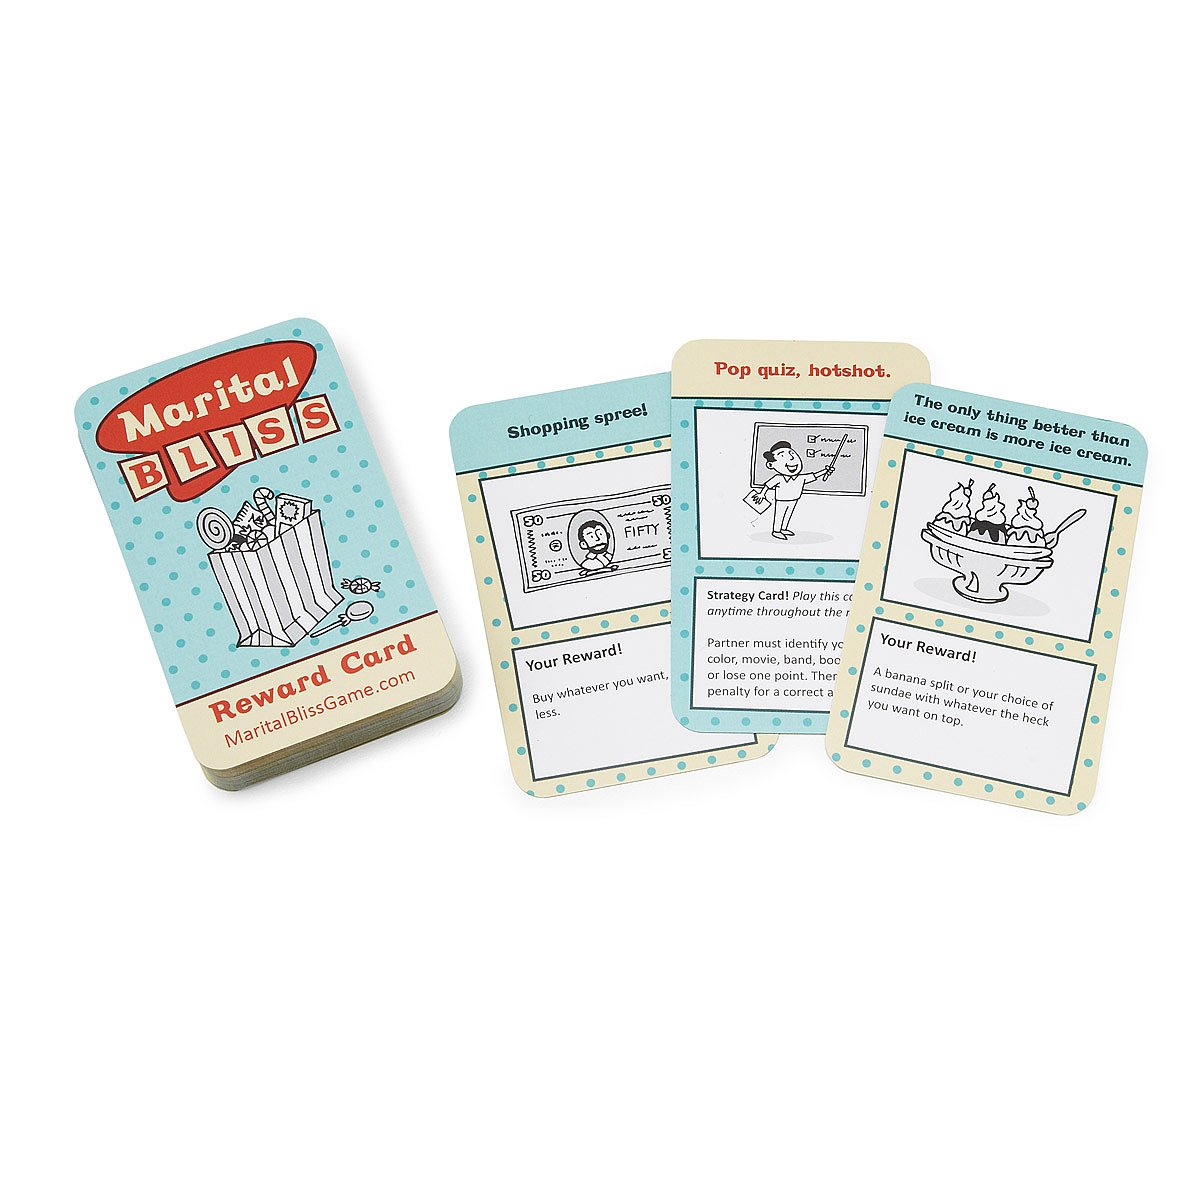 Marital Bliss Game Couples Game Card Game Uncommongoods